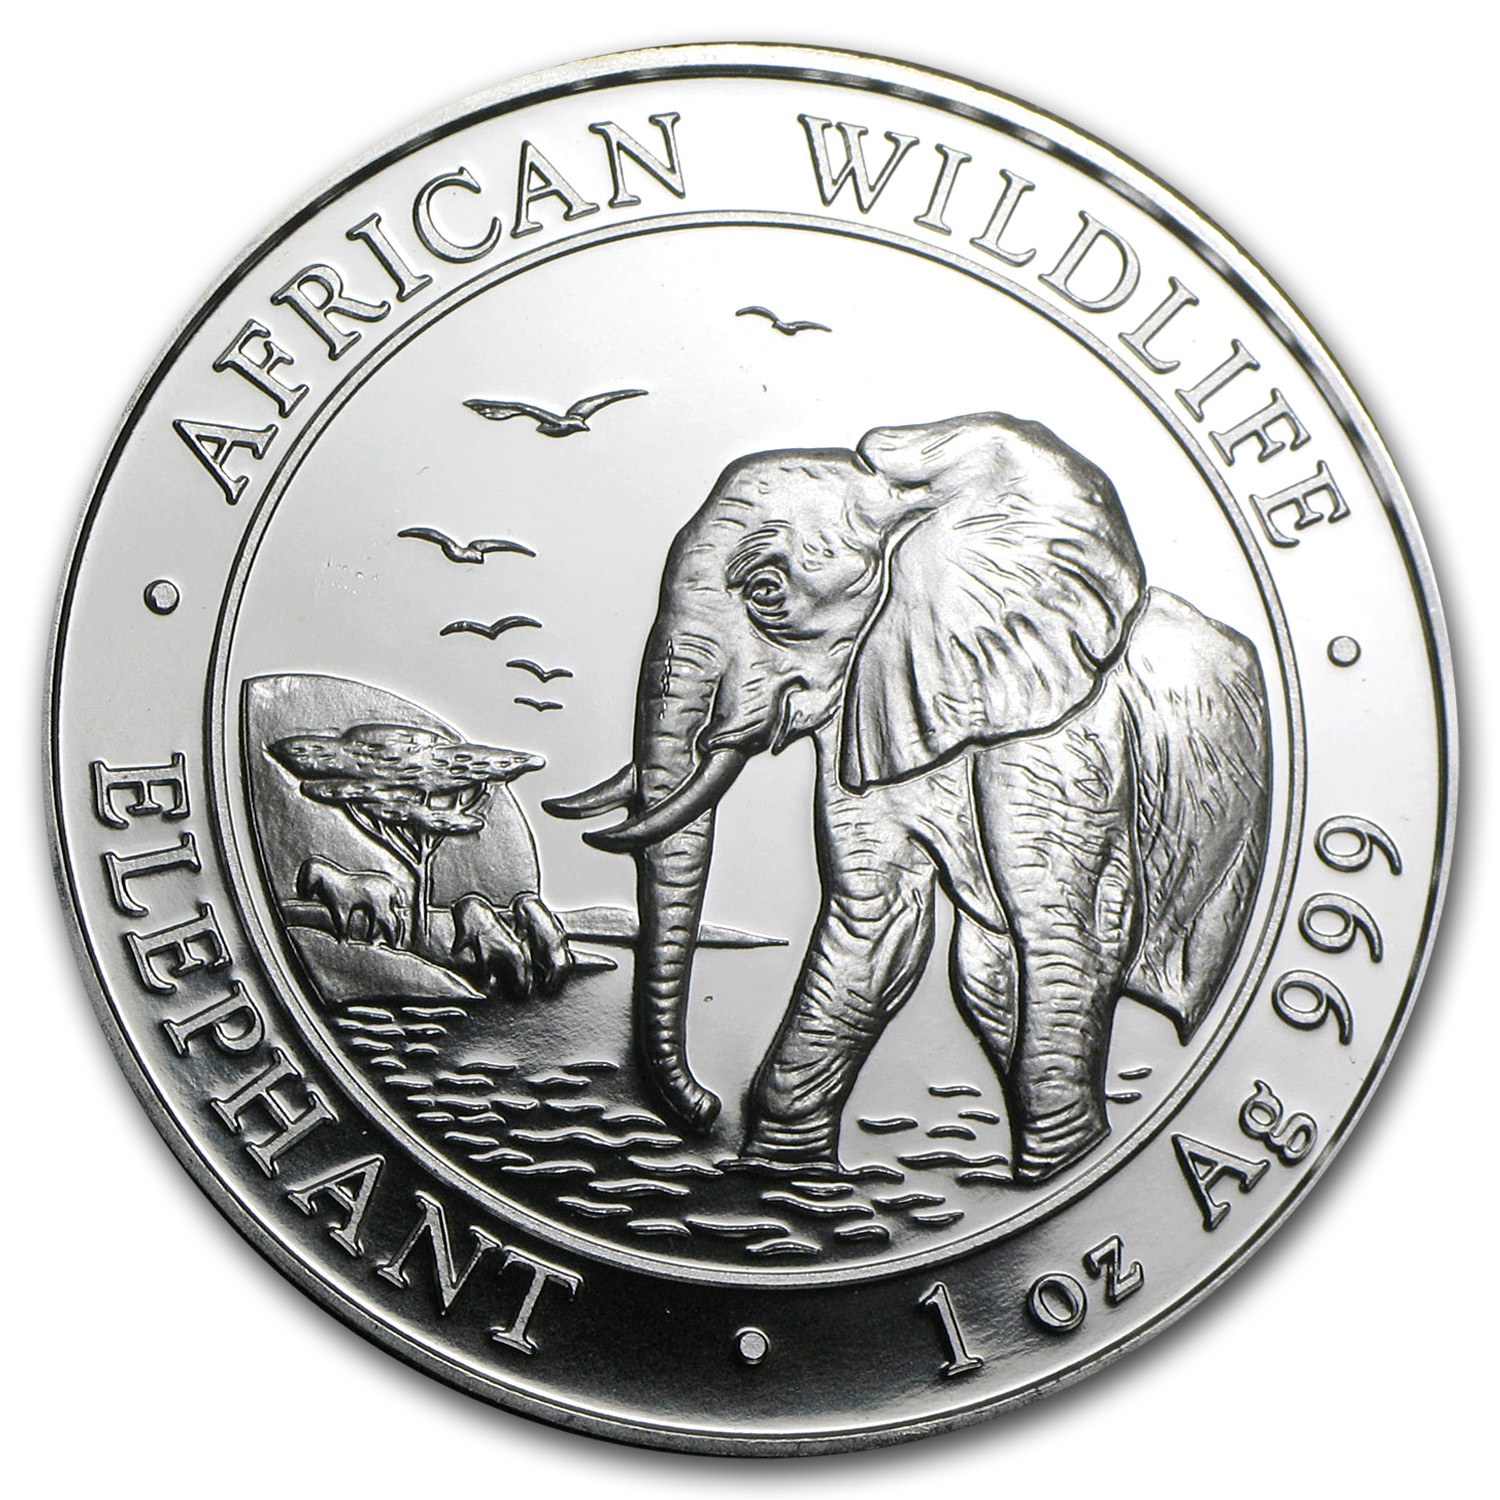 2010 1 oz Silver Somalian Elephant - Brilliant Uncirculated